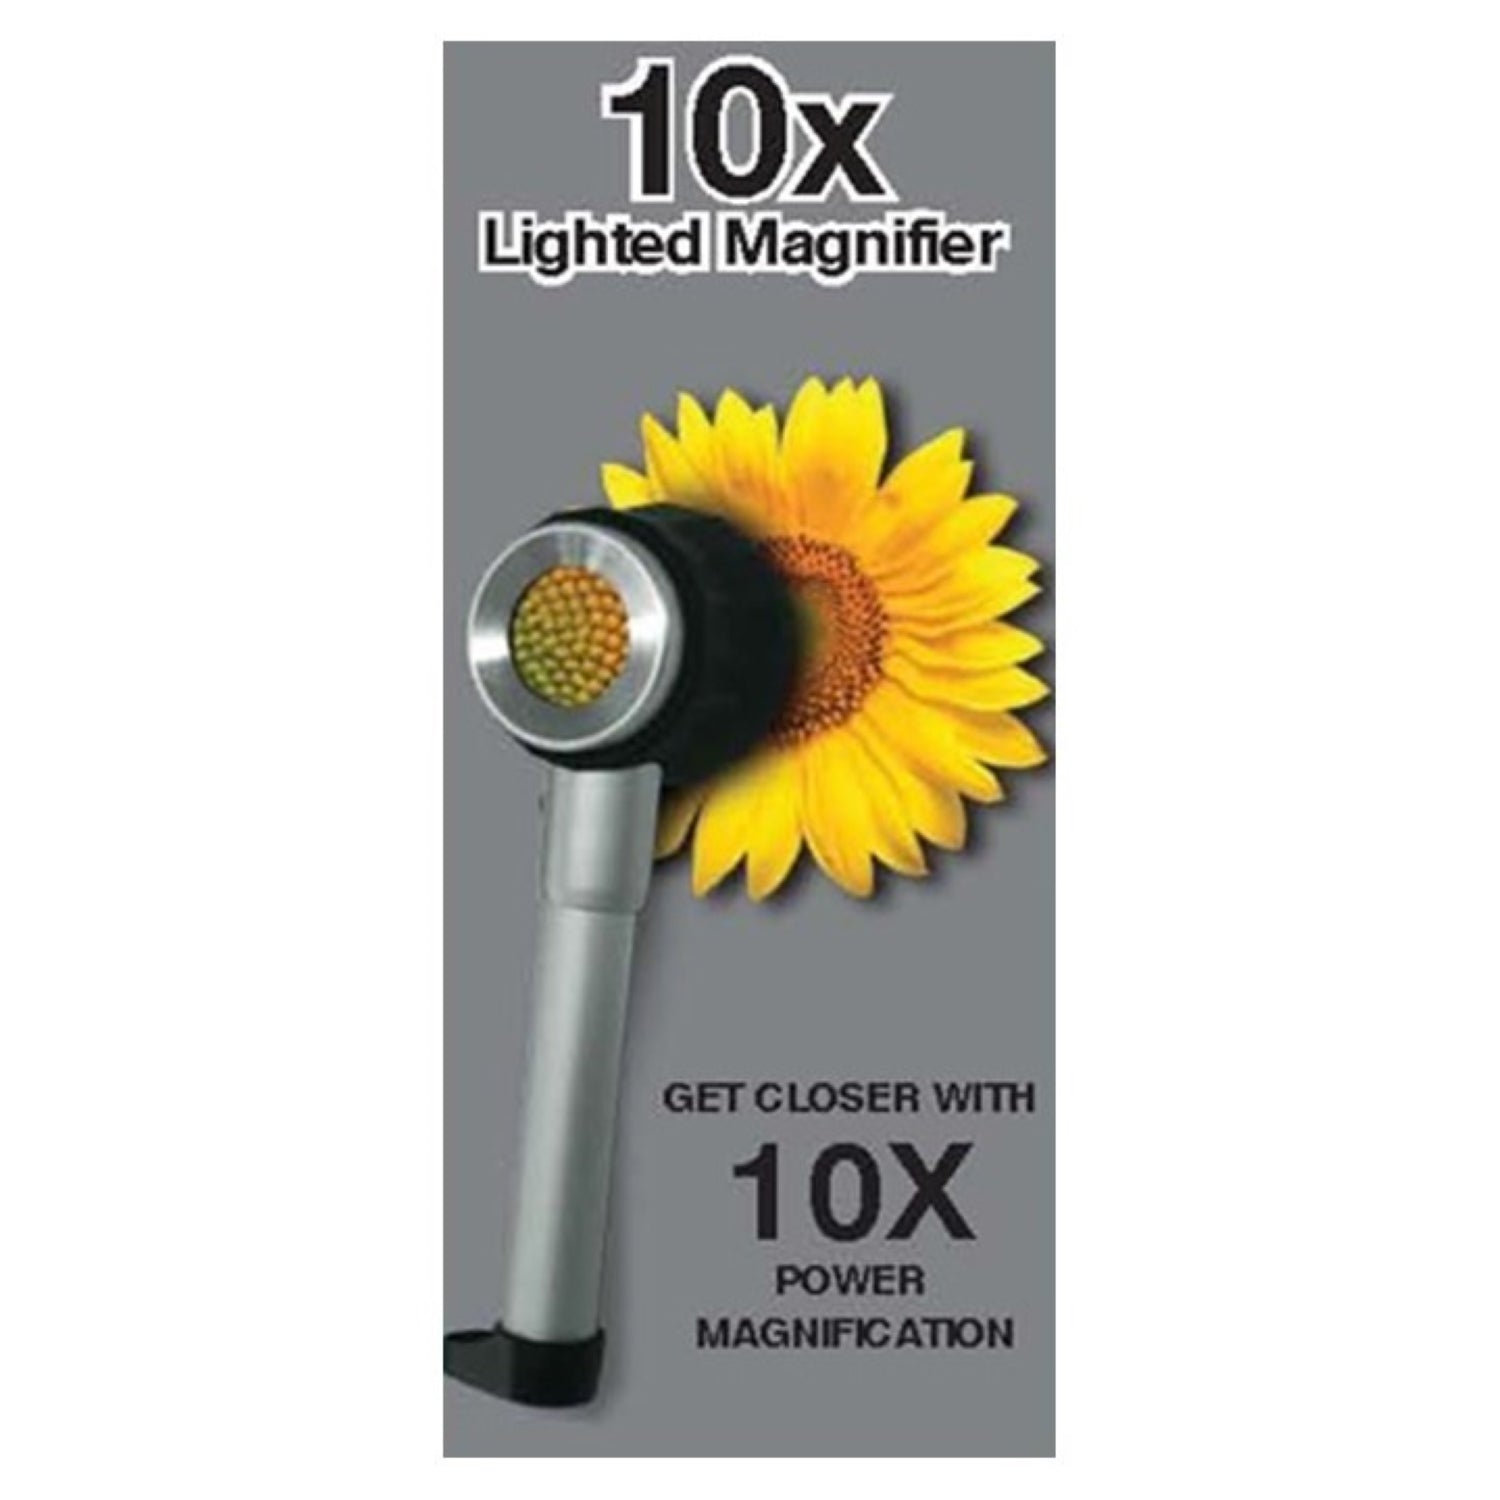 ARNOTTS The 10X 3 LEDs Lighted Magnifier